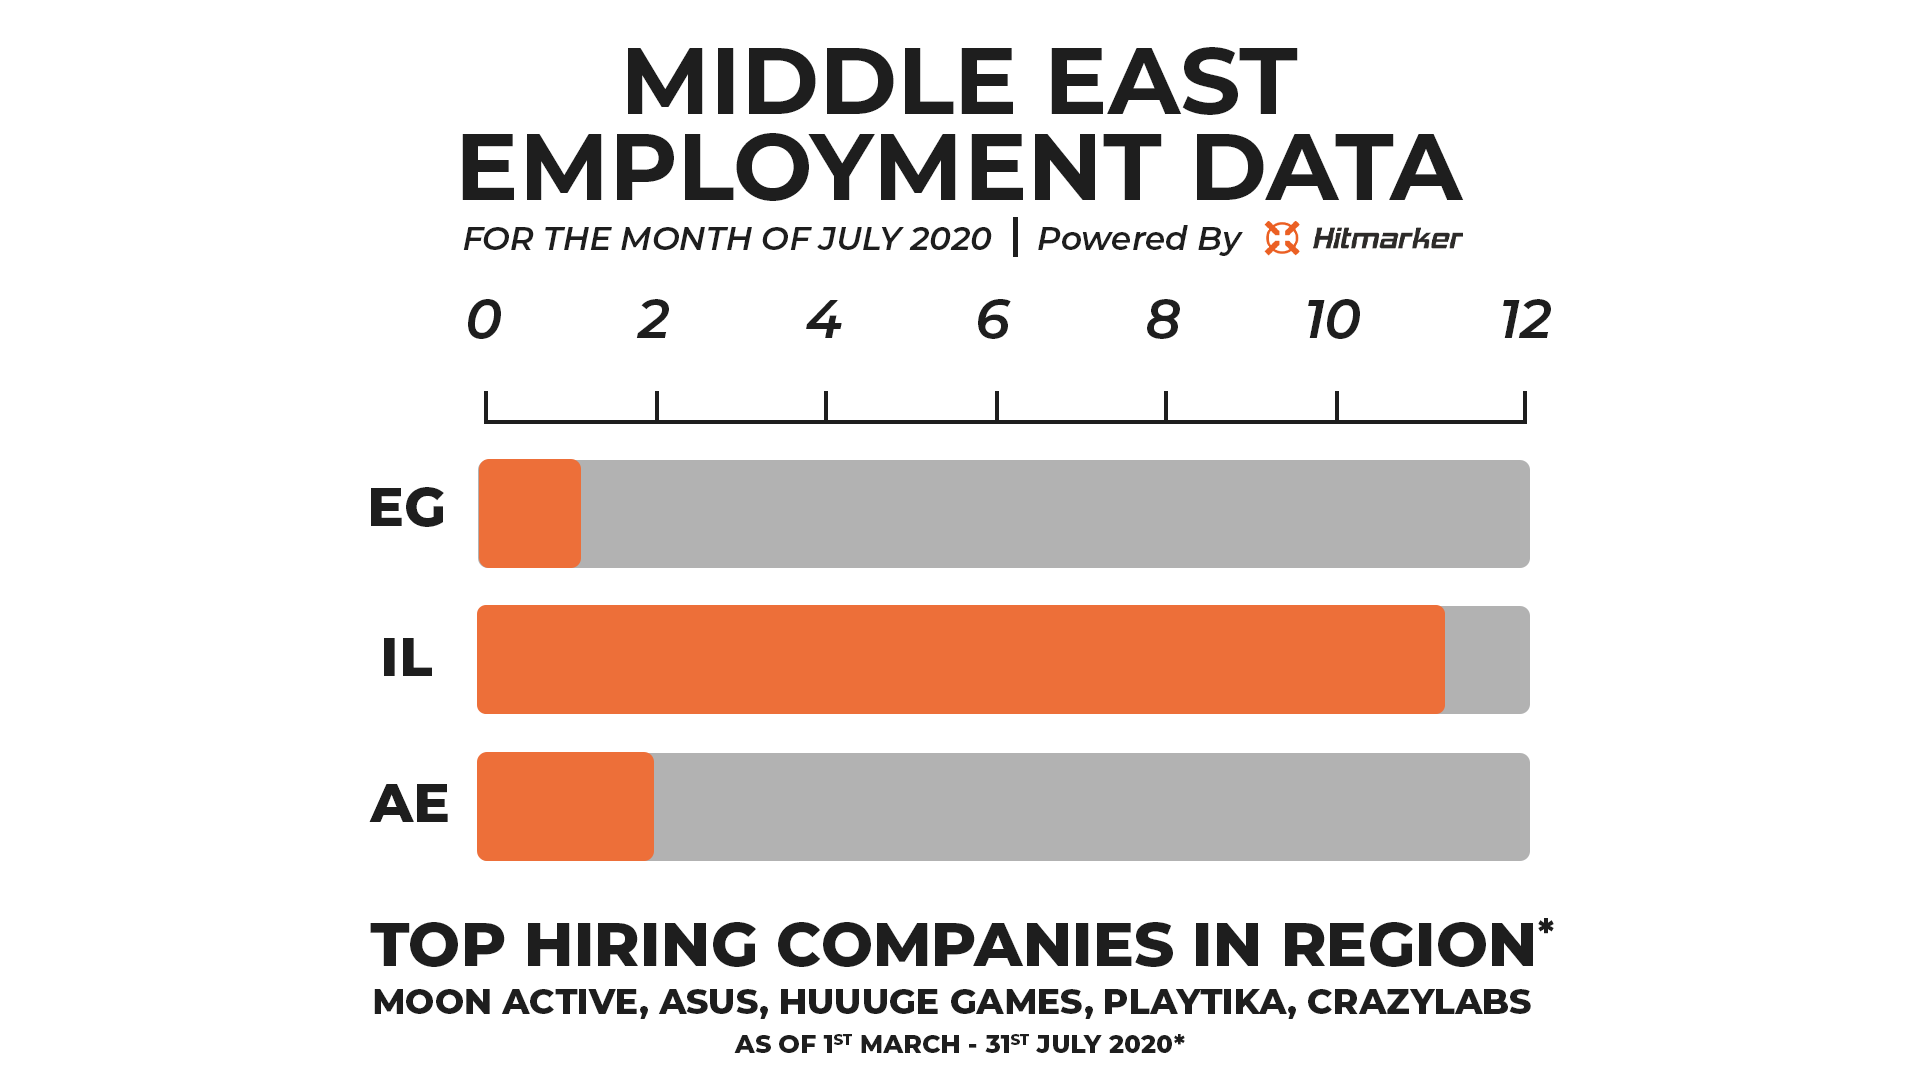 Hitmarker Employment Data Middle East